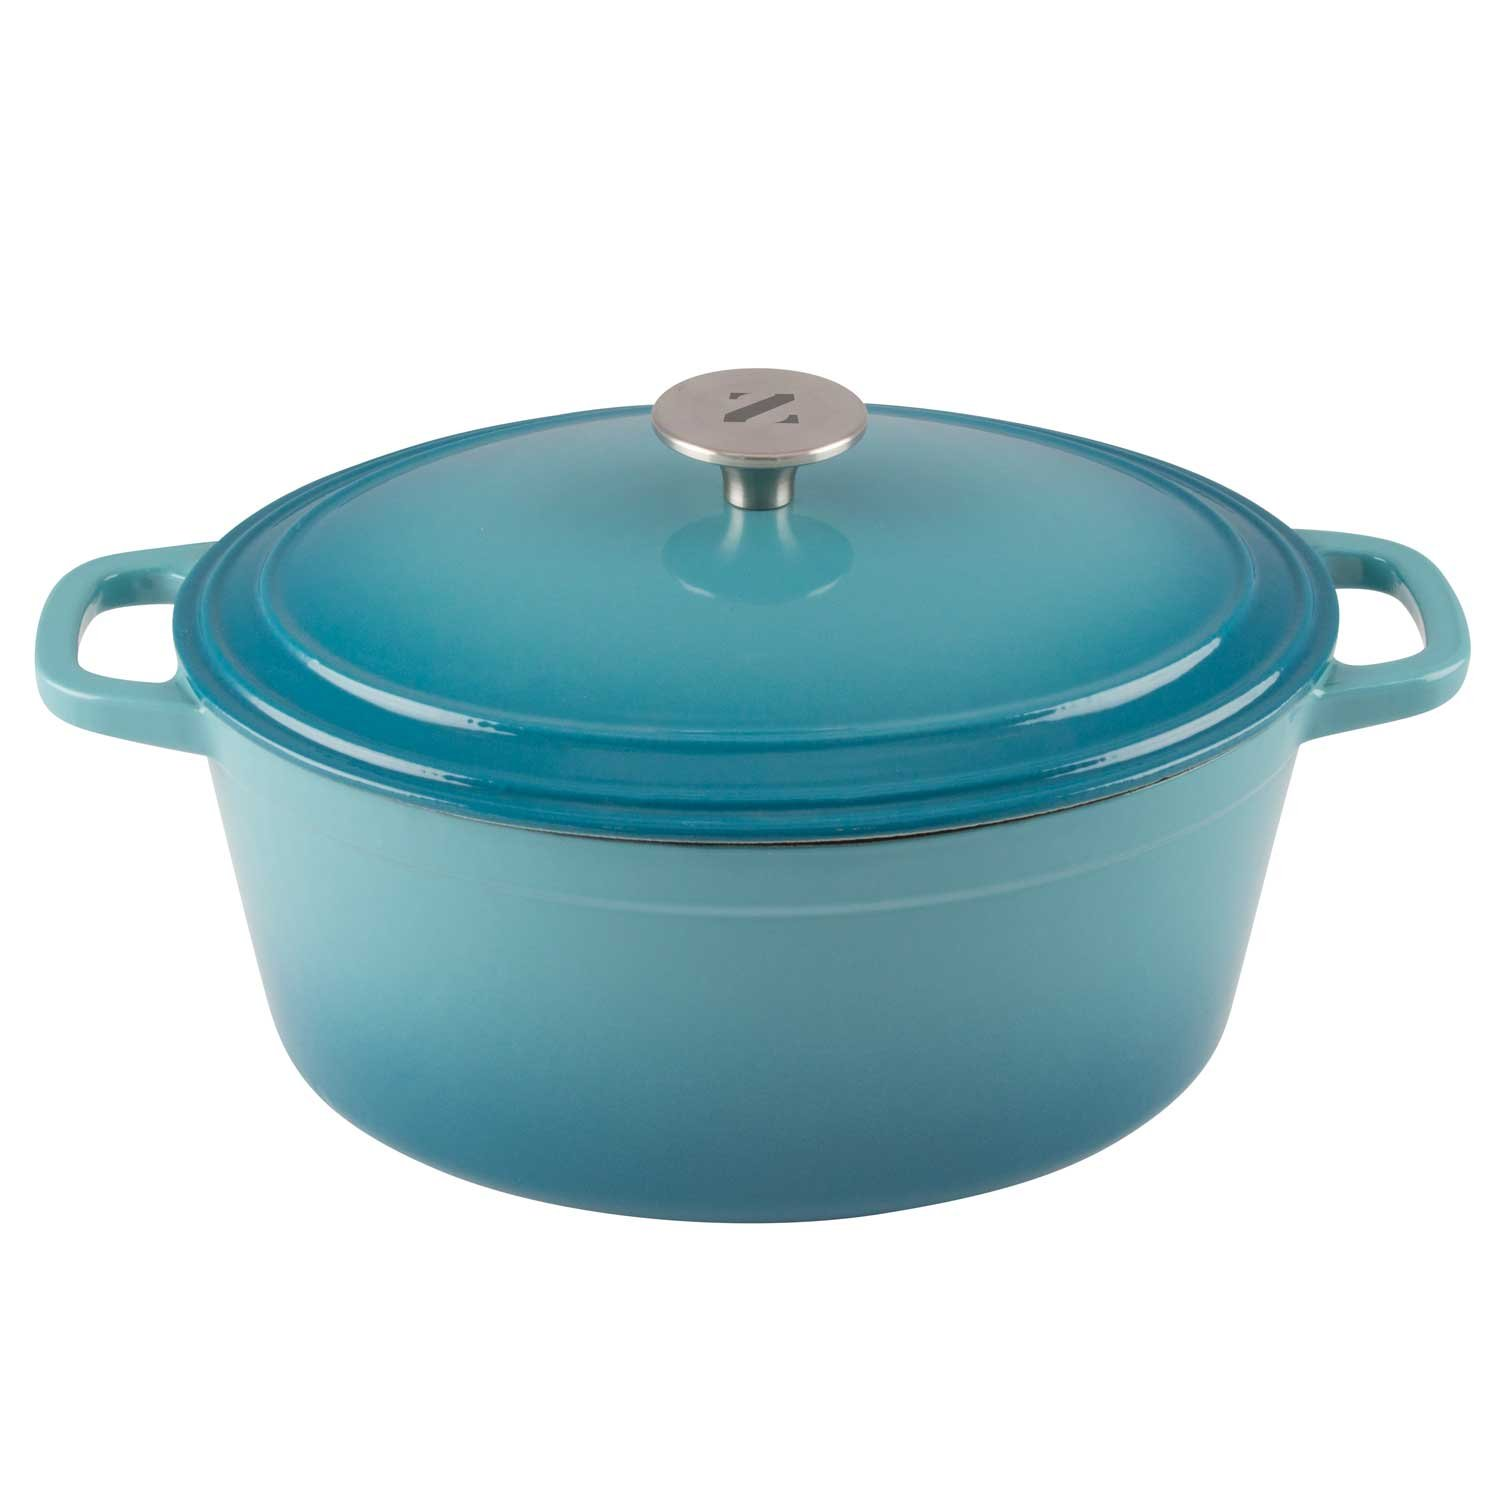 Zelancio 6 Quart Cast Iron Enamel Covered Oval Dutch Oven Cooking Dish with Skillet Lid (Teal)